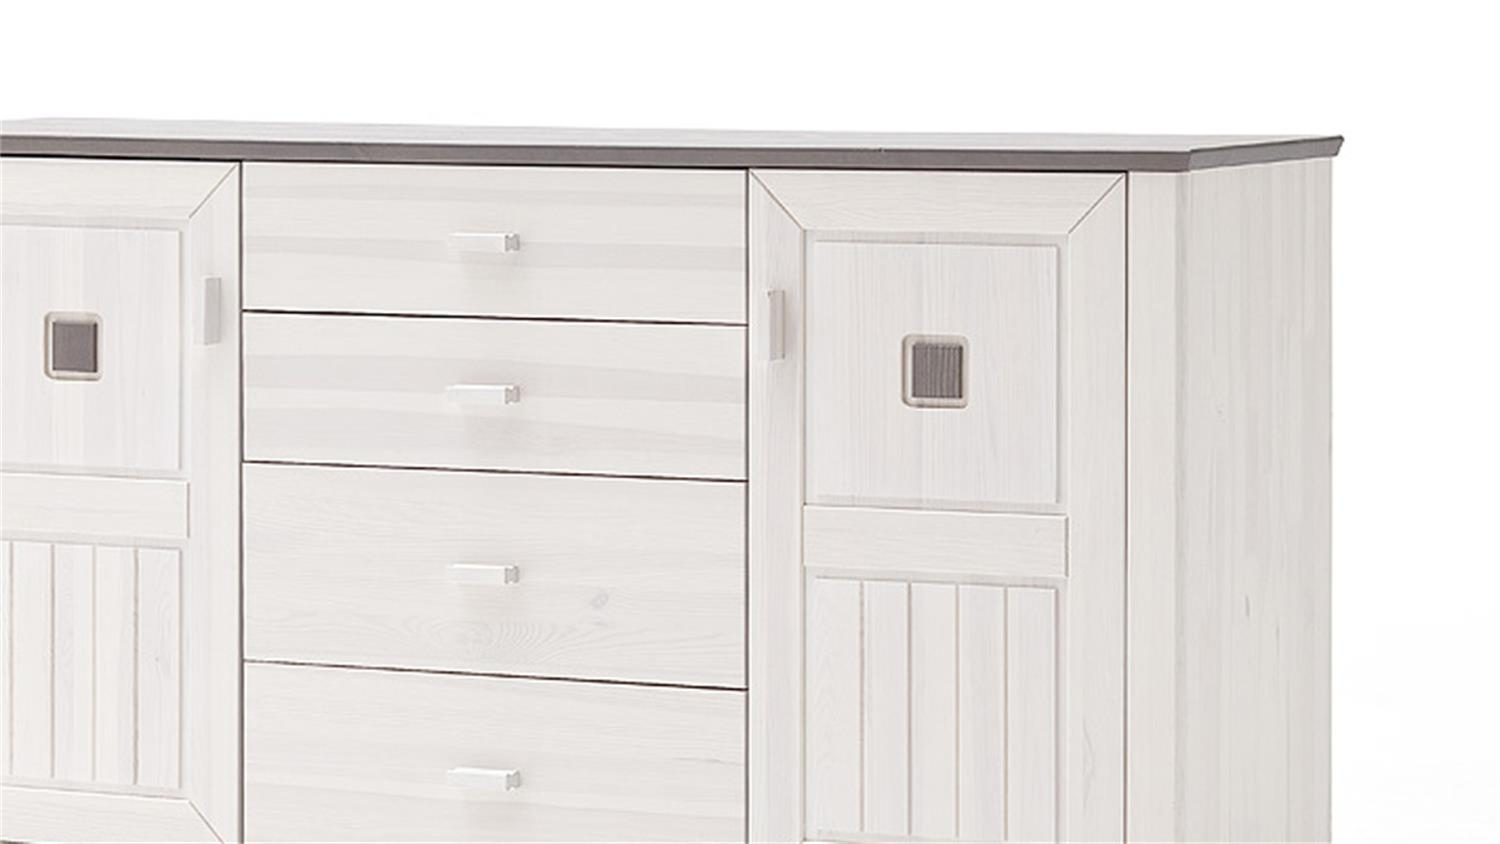 schrank 140 cm breit latest affordable sideboard malm kommode kiefer massiv wei lava cm breit. Black Bedroom Furniture Sets. Home Design Ideas